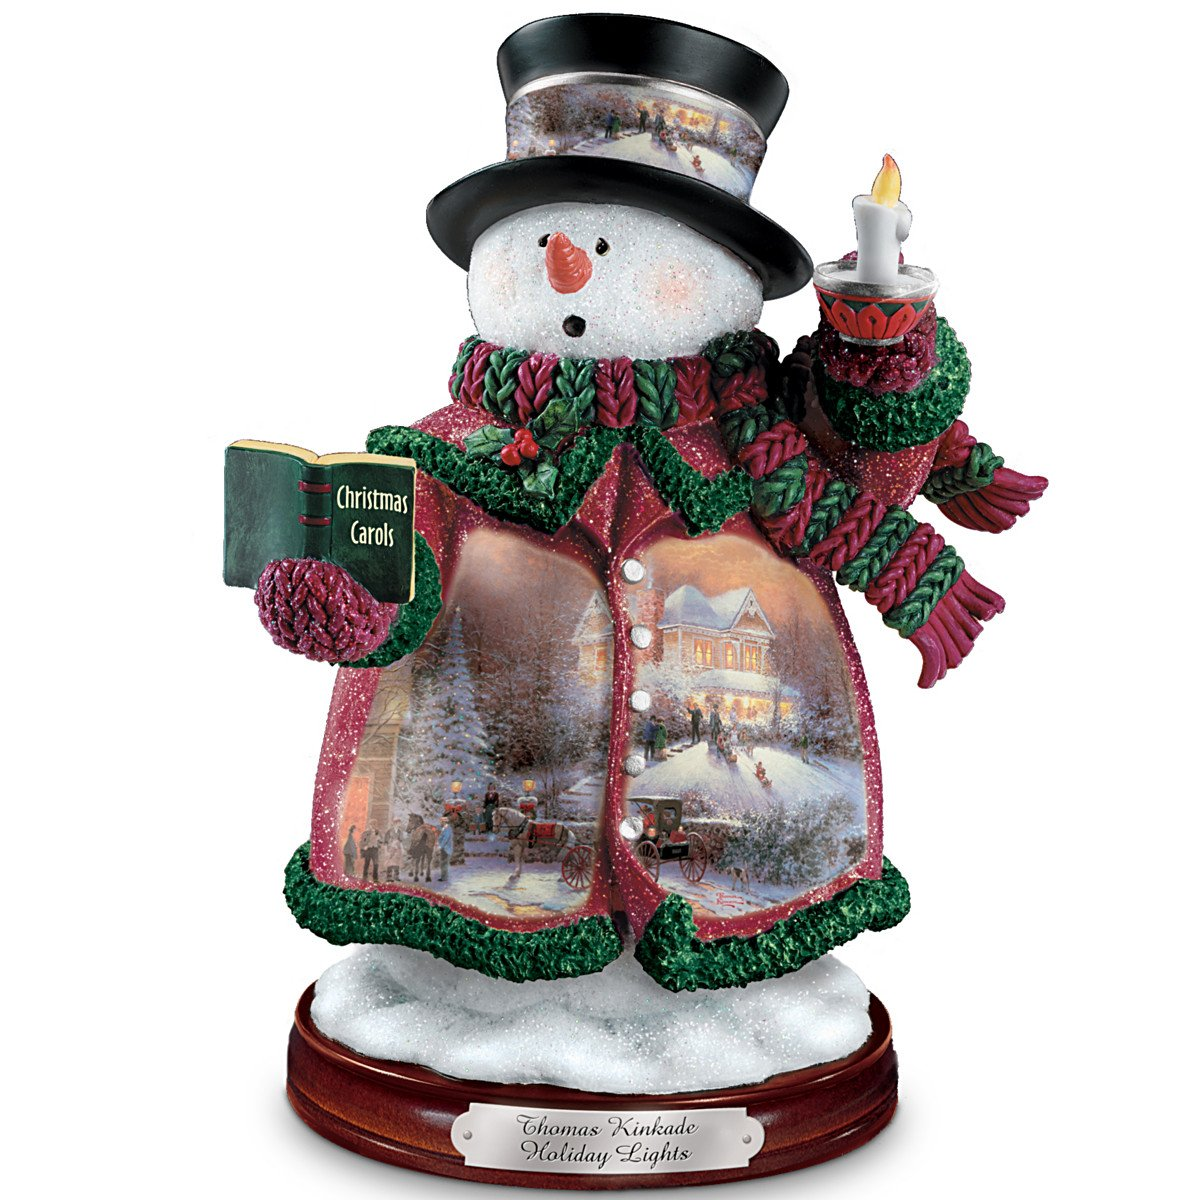 Image of Holiday Lights Snowman Figurine with Thomas Kinkade Christmas Art